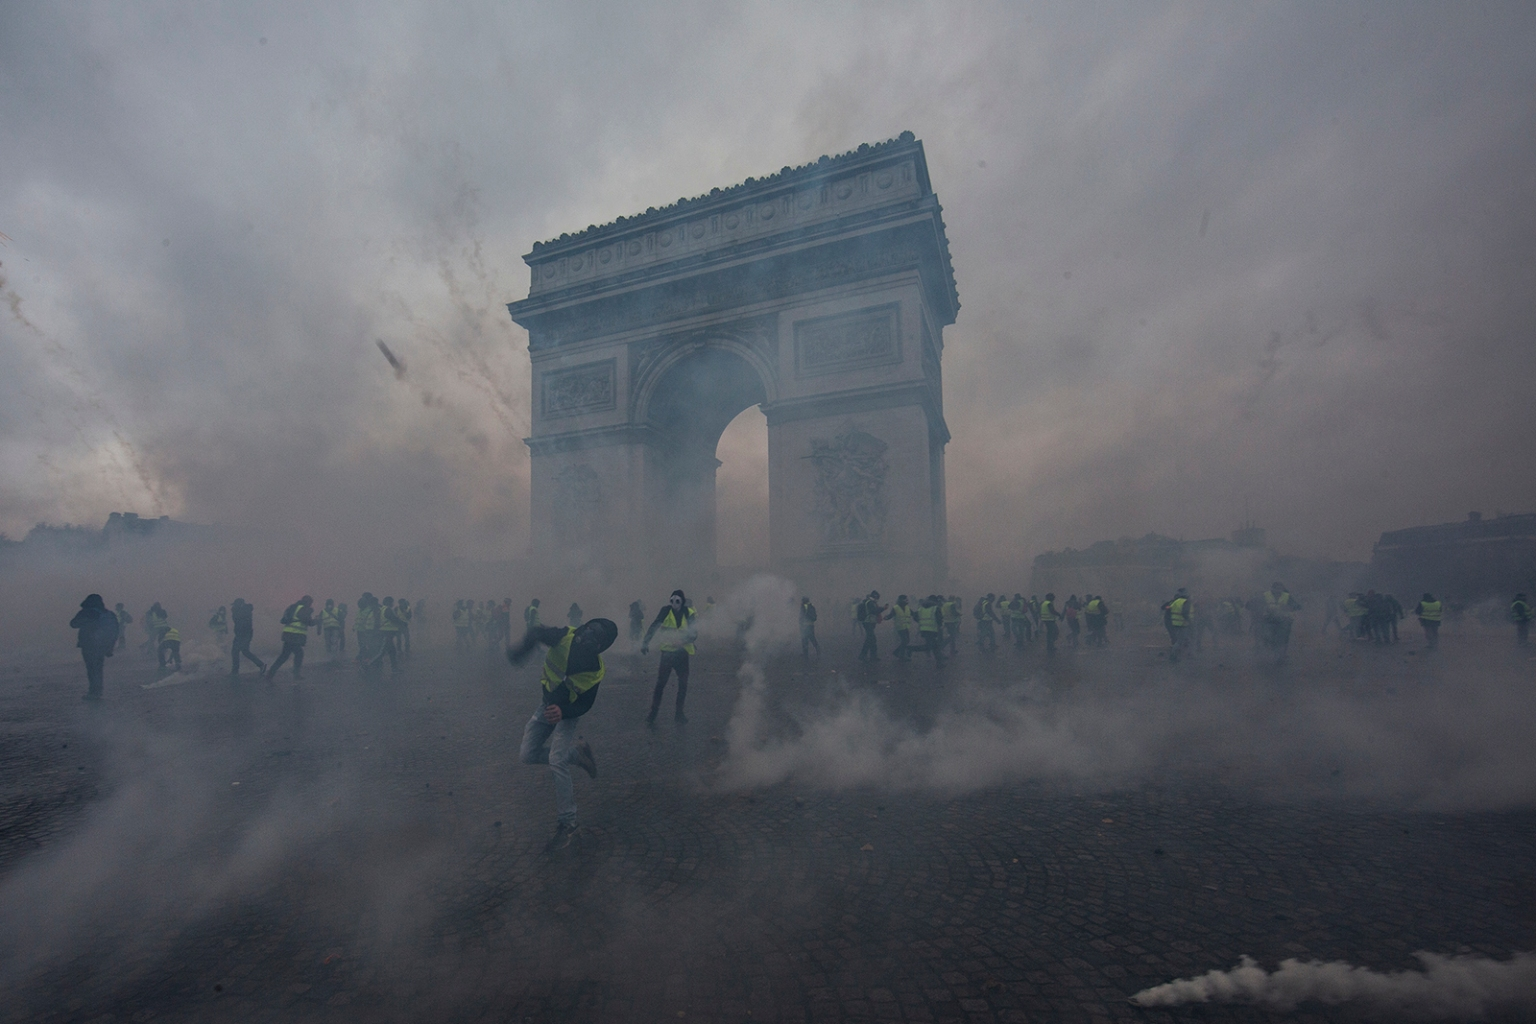 Teargas surrounds protesters as they clash with riot police during a Yellow Vest demonstration near the Arc de Triomphe in Paris on Dec. 1. Veronique de Viguerie/Getty Images